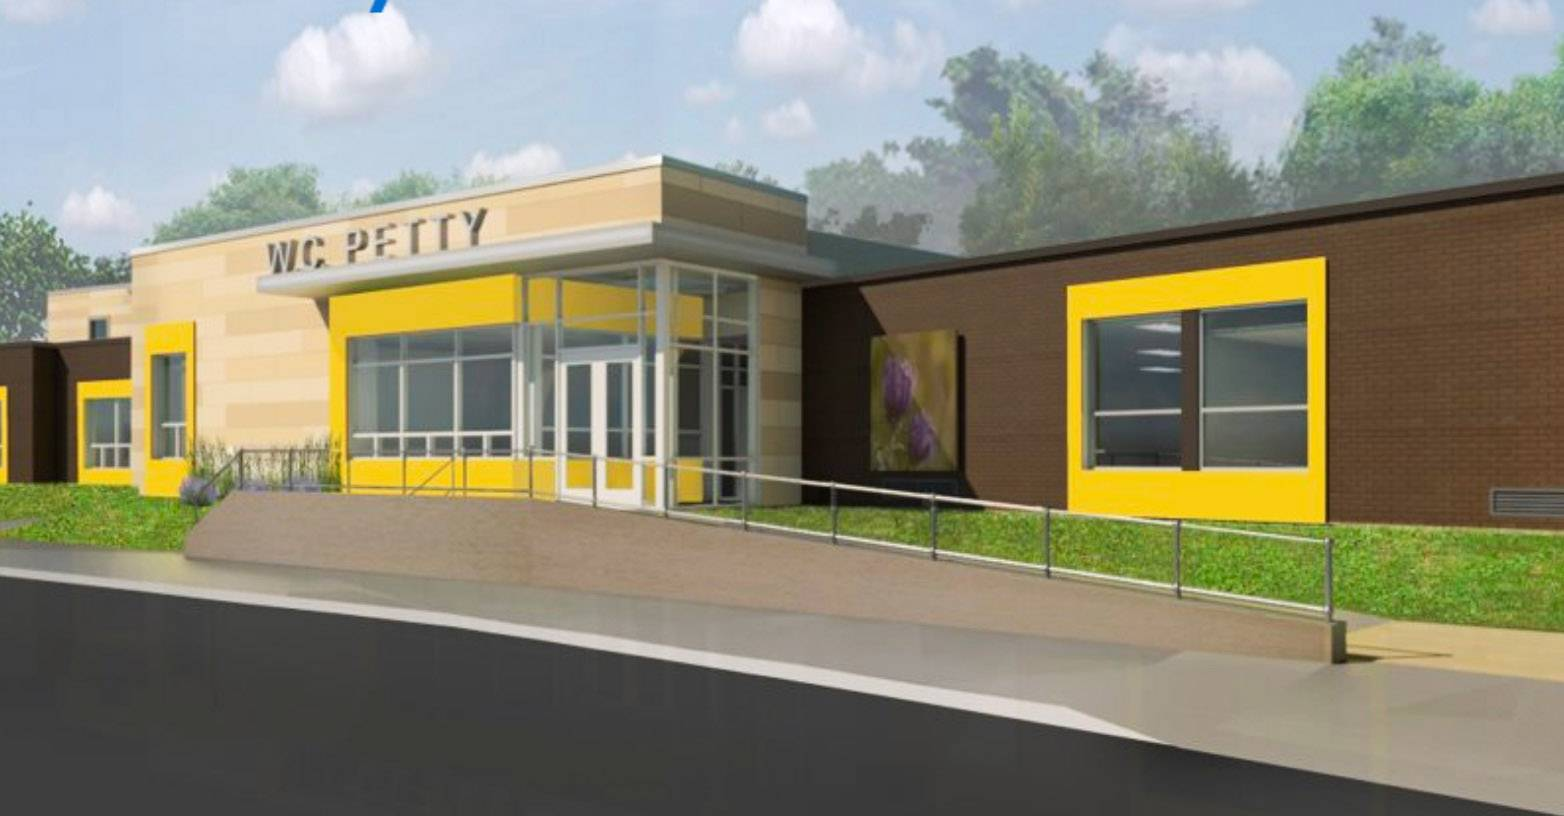 A rendering of an upgraded W.C. Petty school in Antioch District 34.